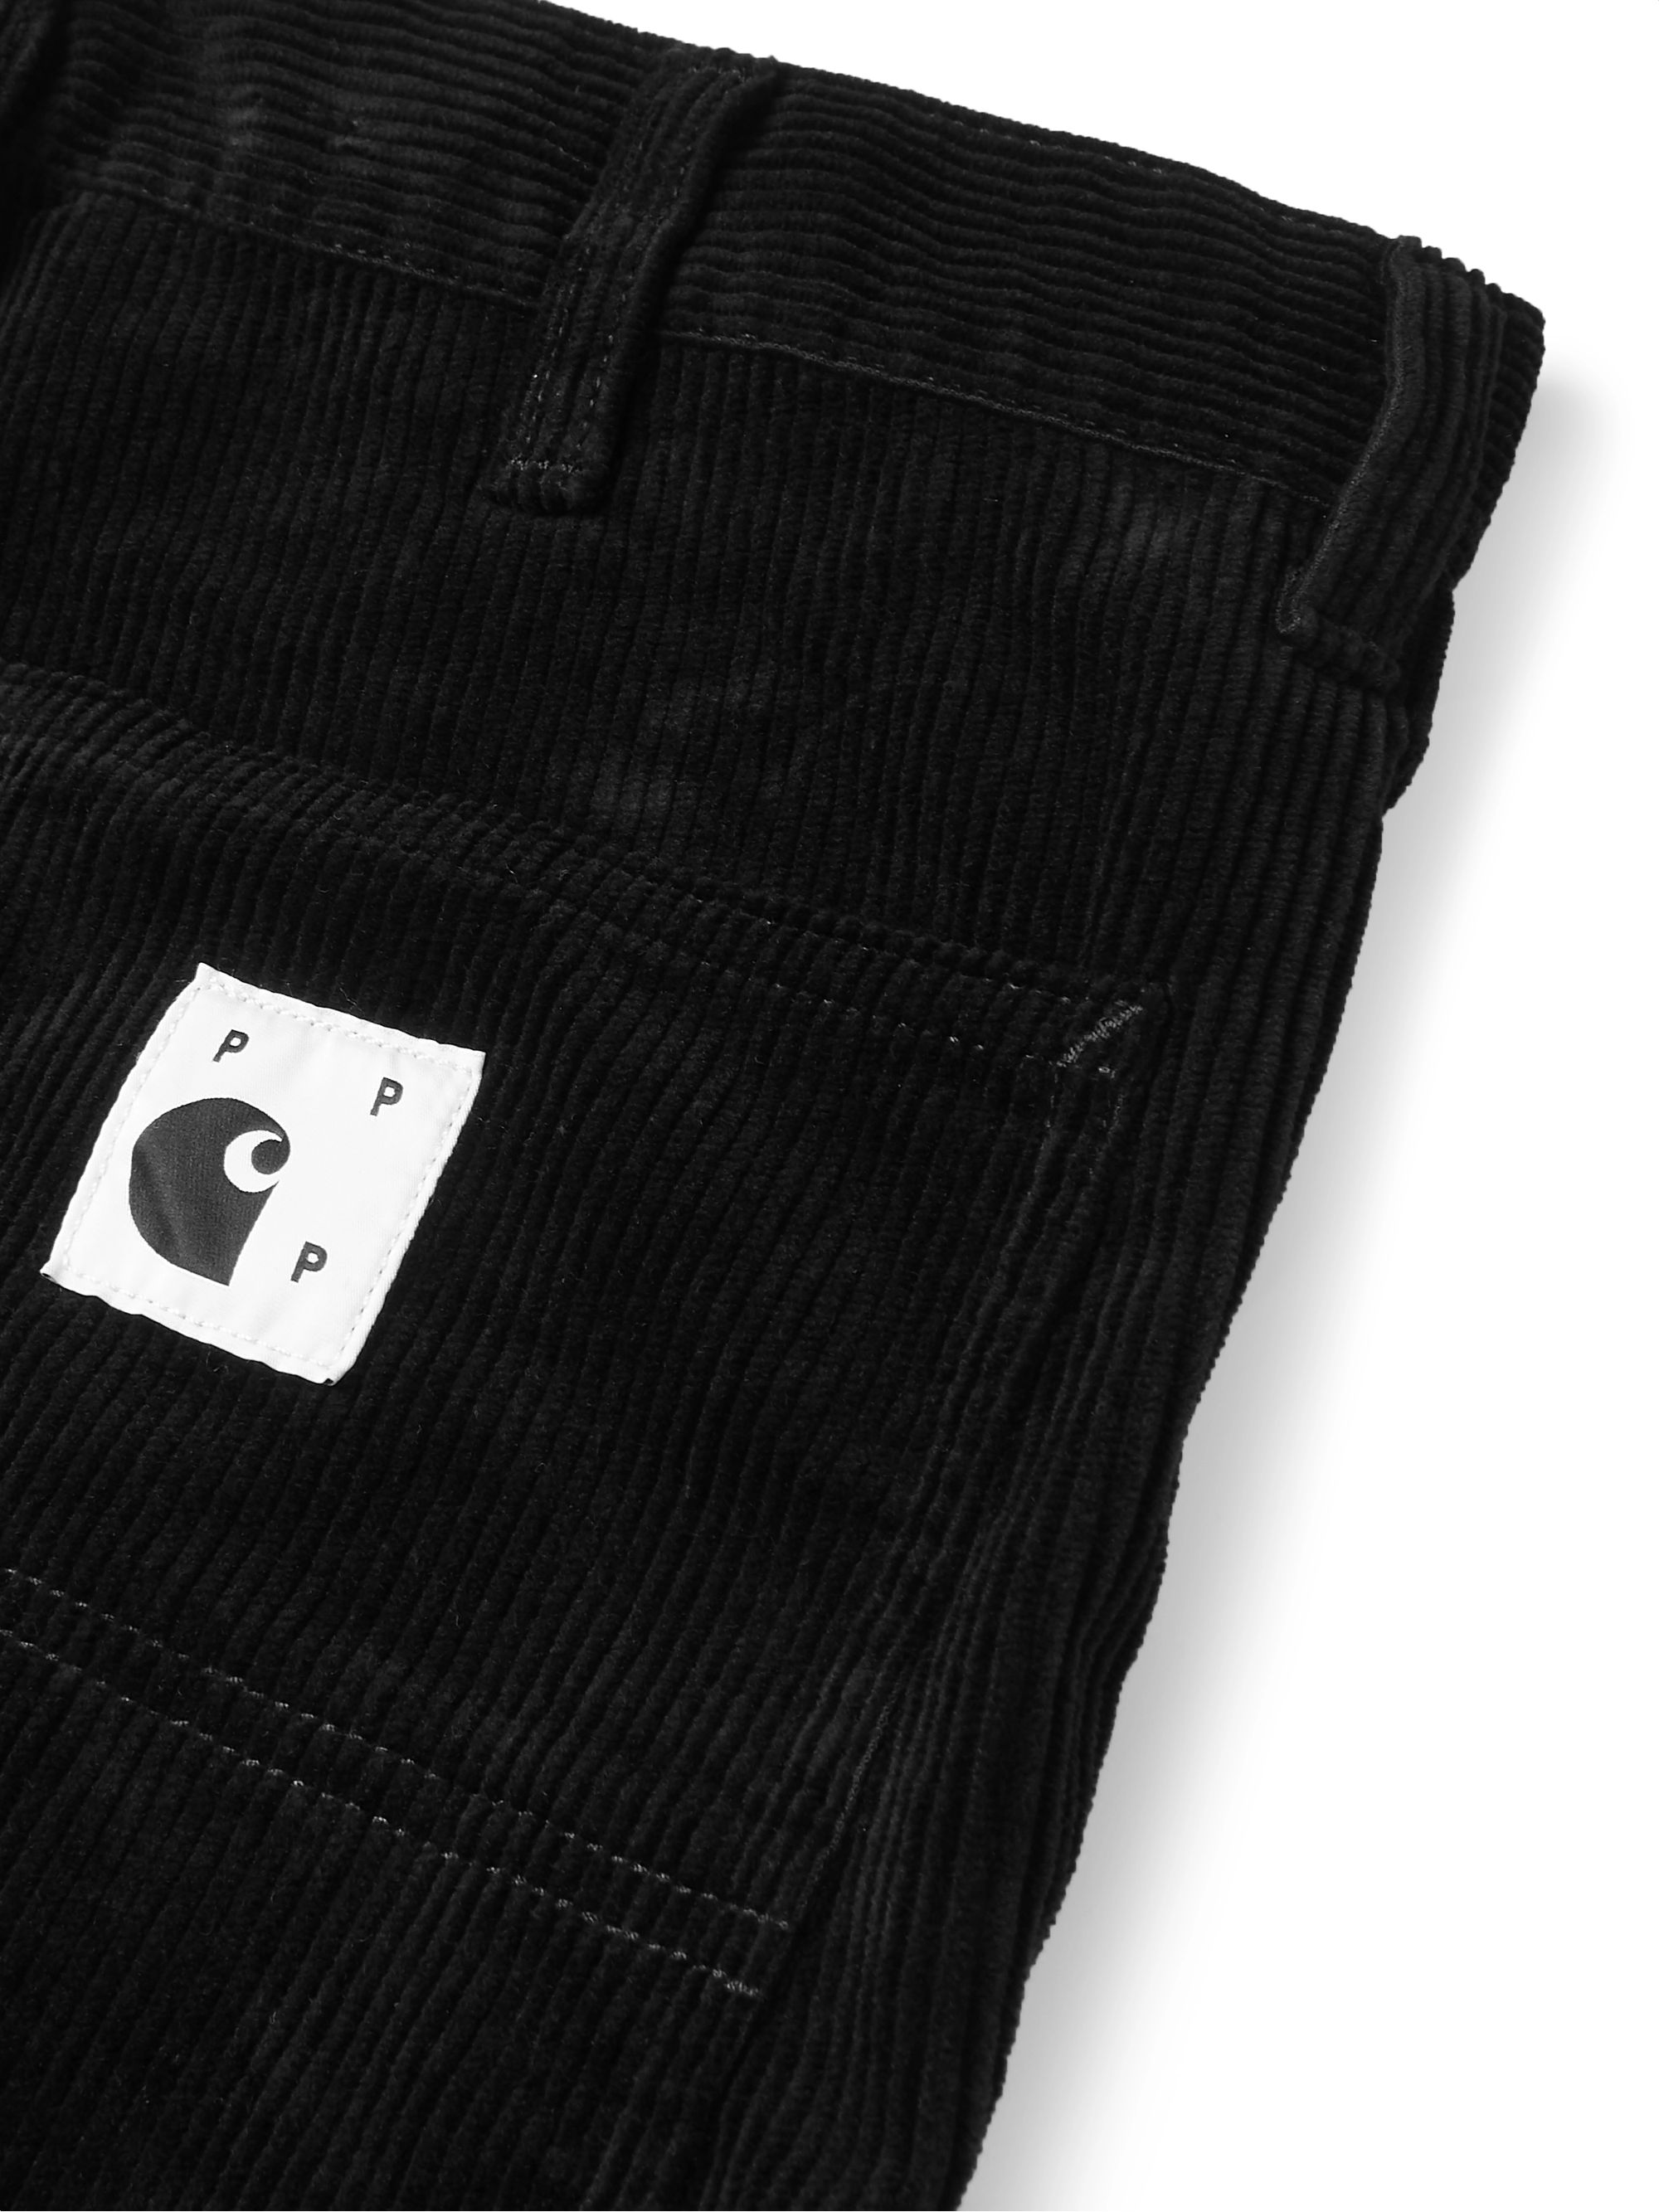 Pop Trading Company + Carhartt WIP Black Cotton-Corduroy Trousers